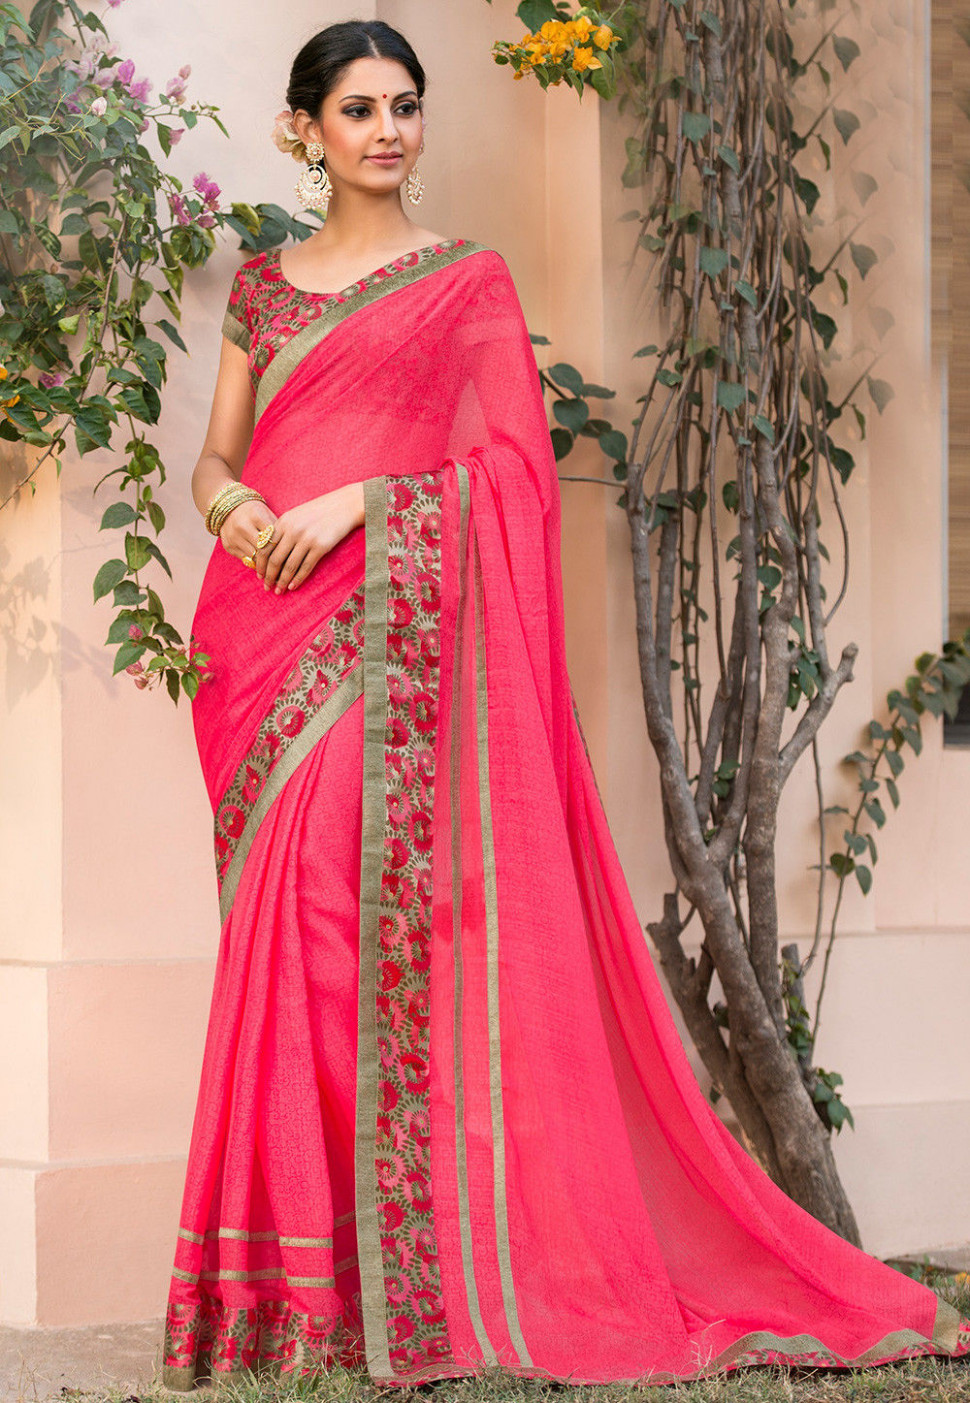 Printed Chiffon Saree in Pink : SSF4732